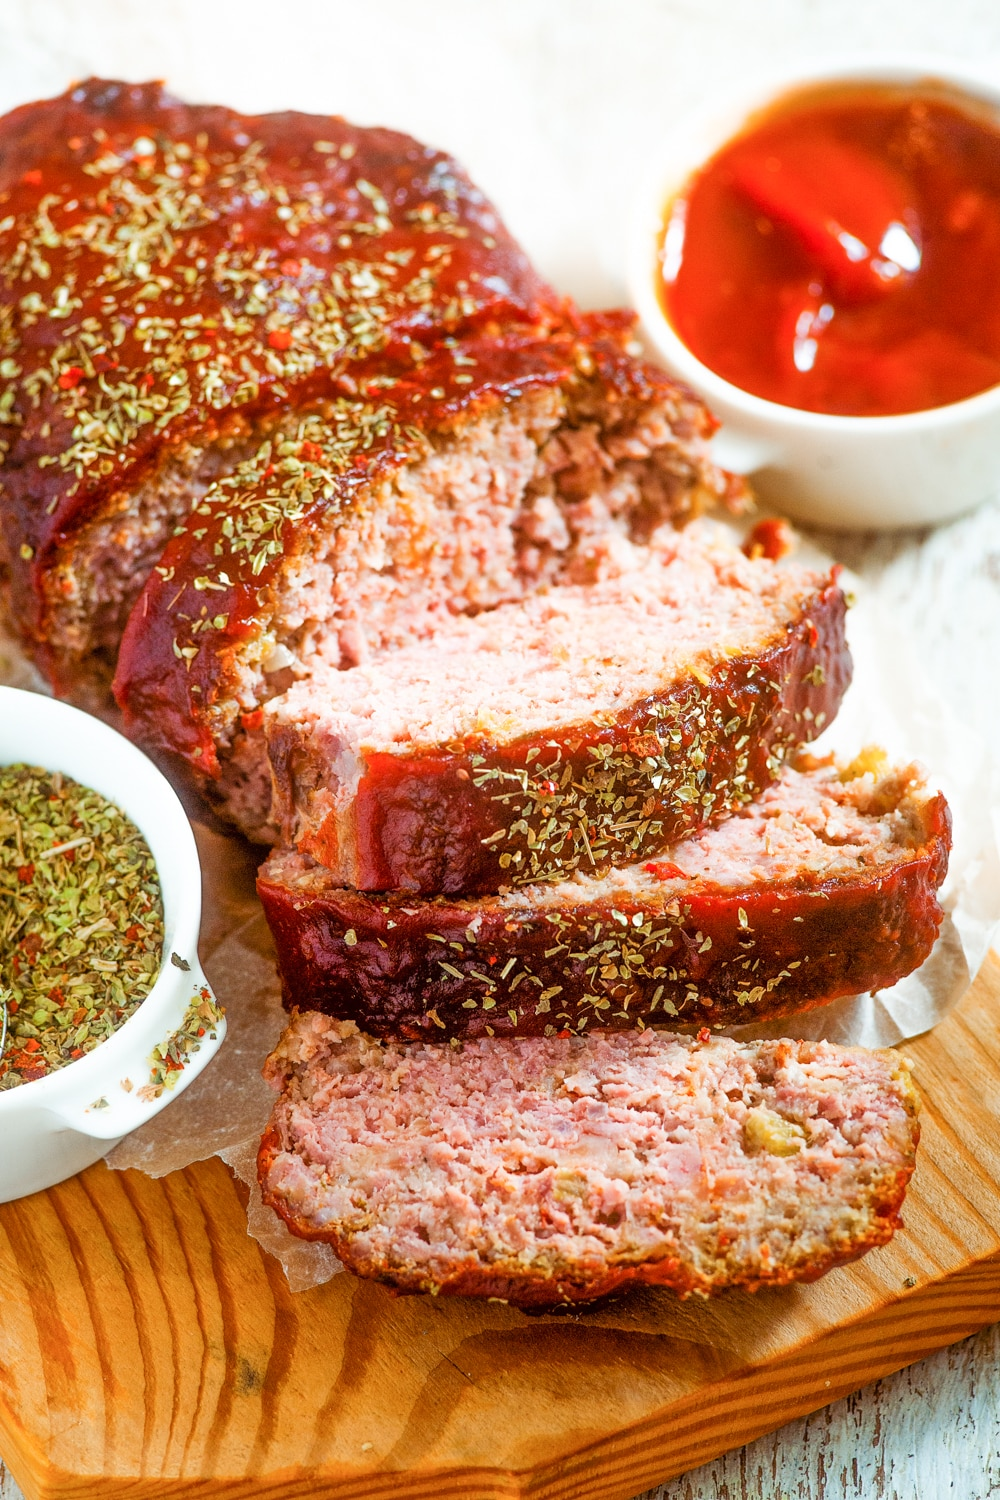 Keto Meatloaf The Best Easy Low Carb Meatloaf Recipe You Ll Make